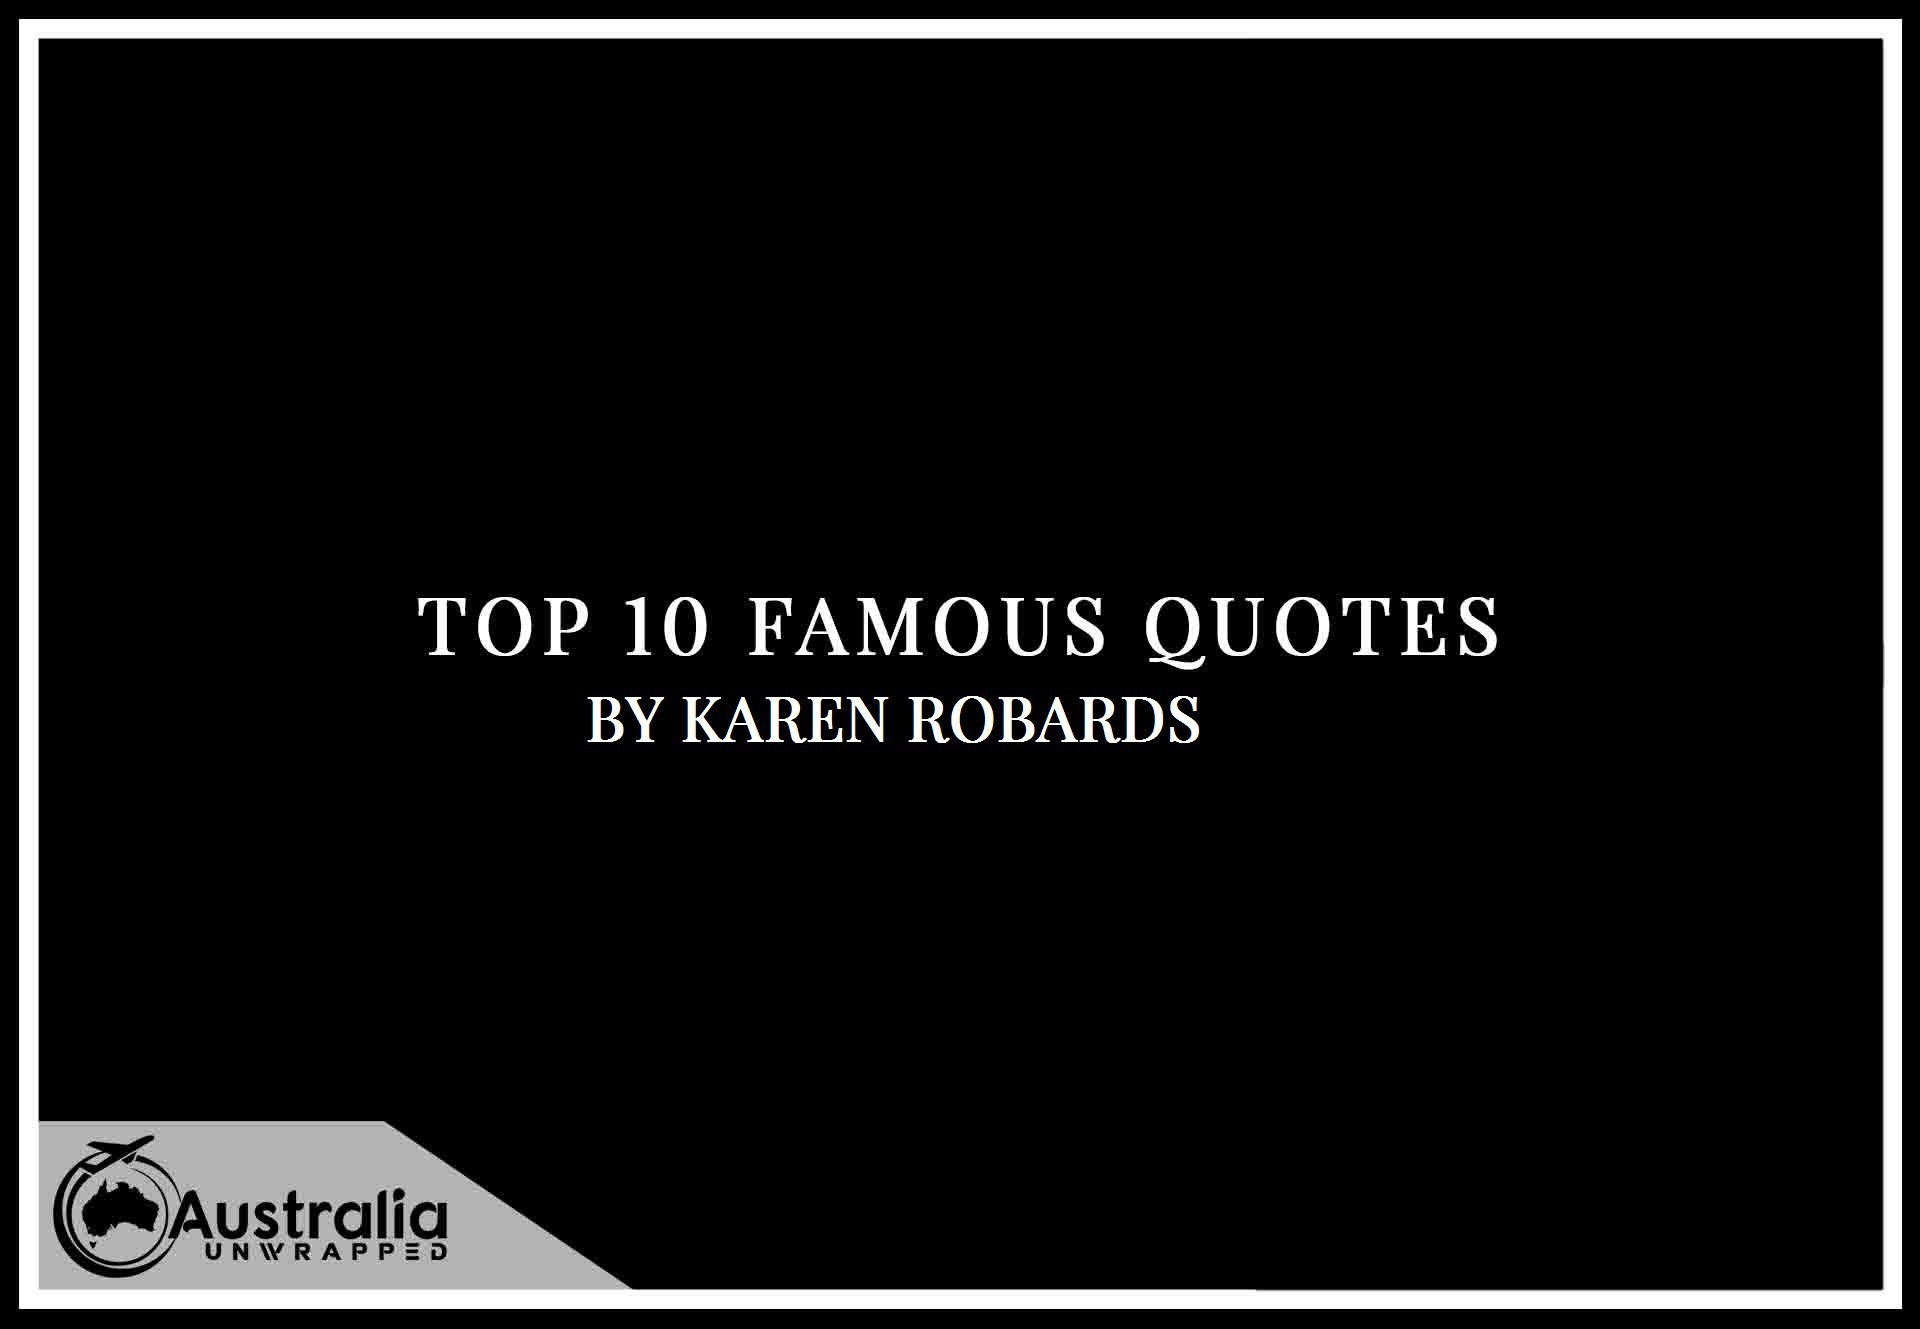 Karen Robards's Top 10 Popular and Famous Quotes